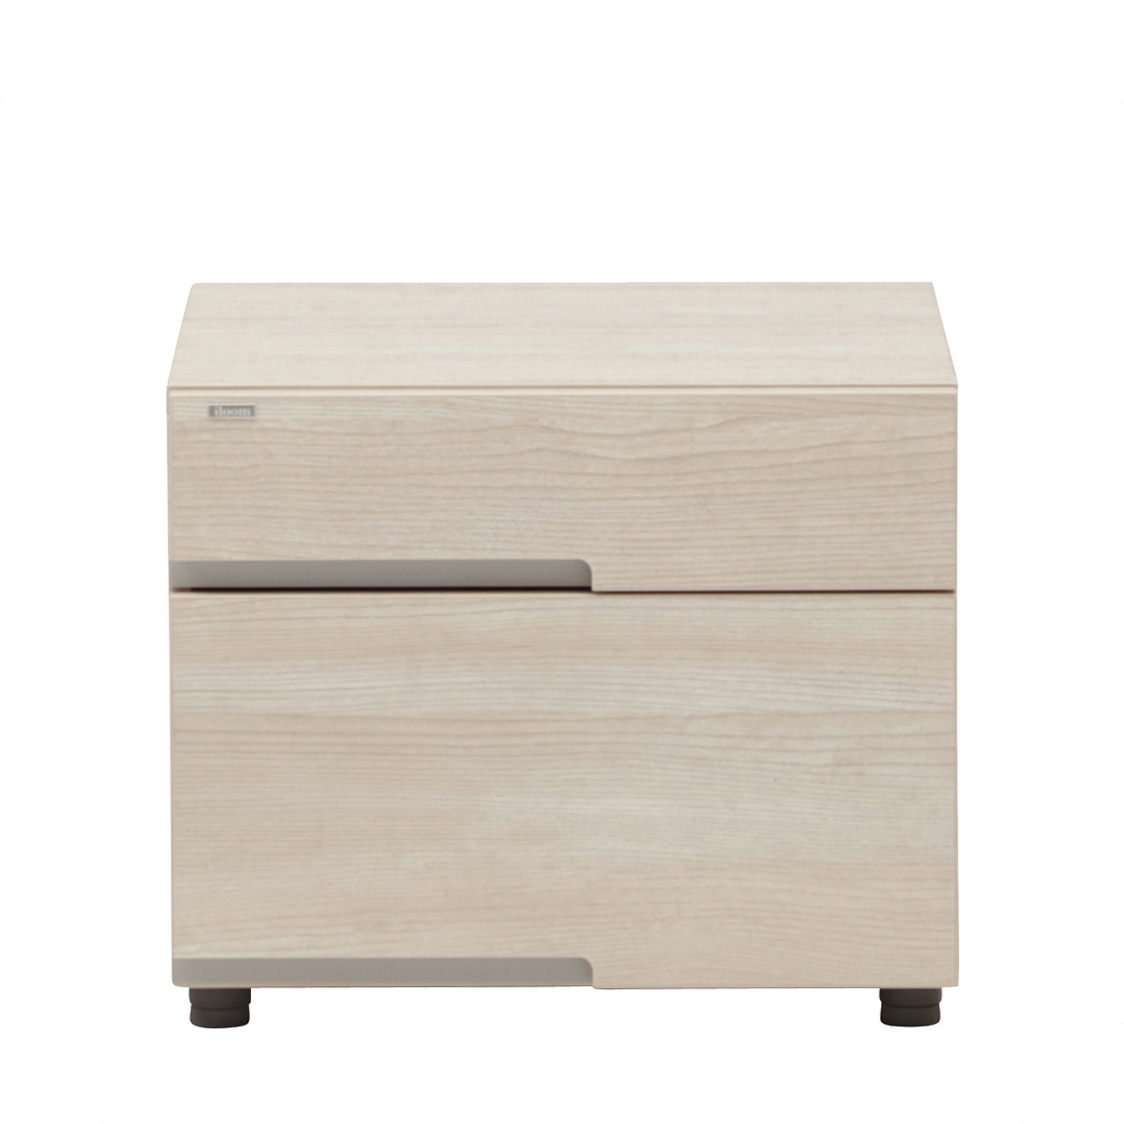 500W Quo 2-Story Side Table HP110516-OS